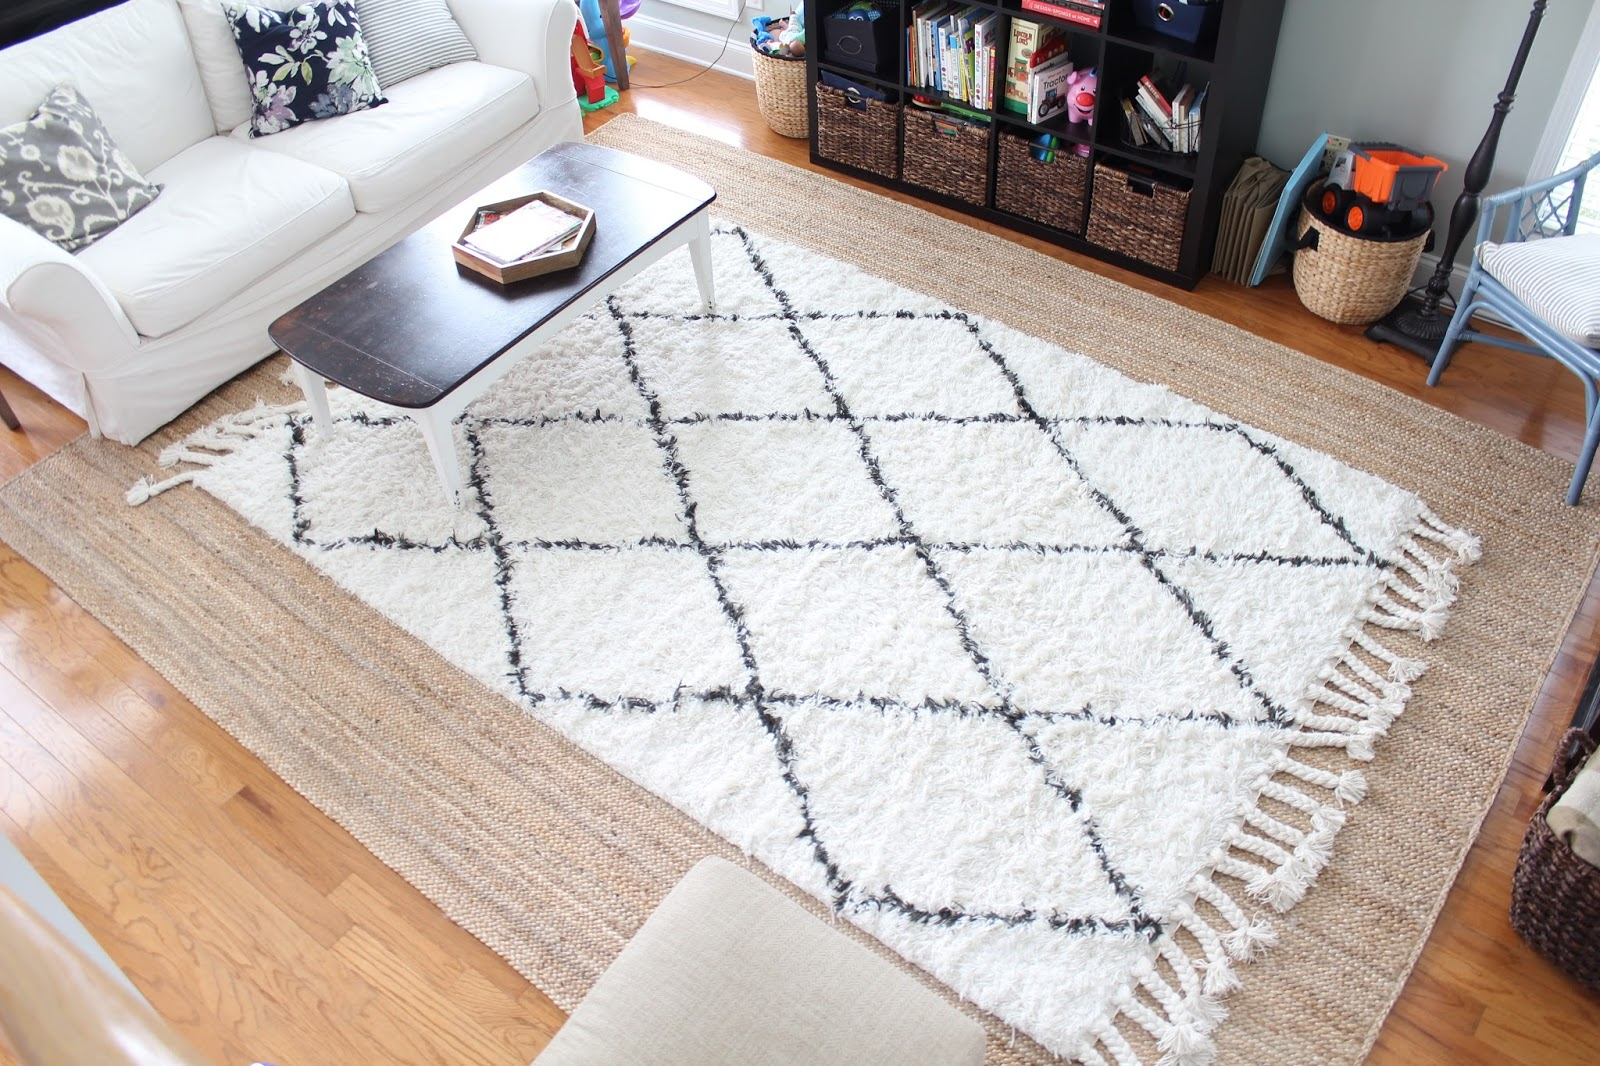 Our New Double Layer Rugs In The Living Room